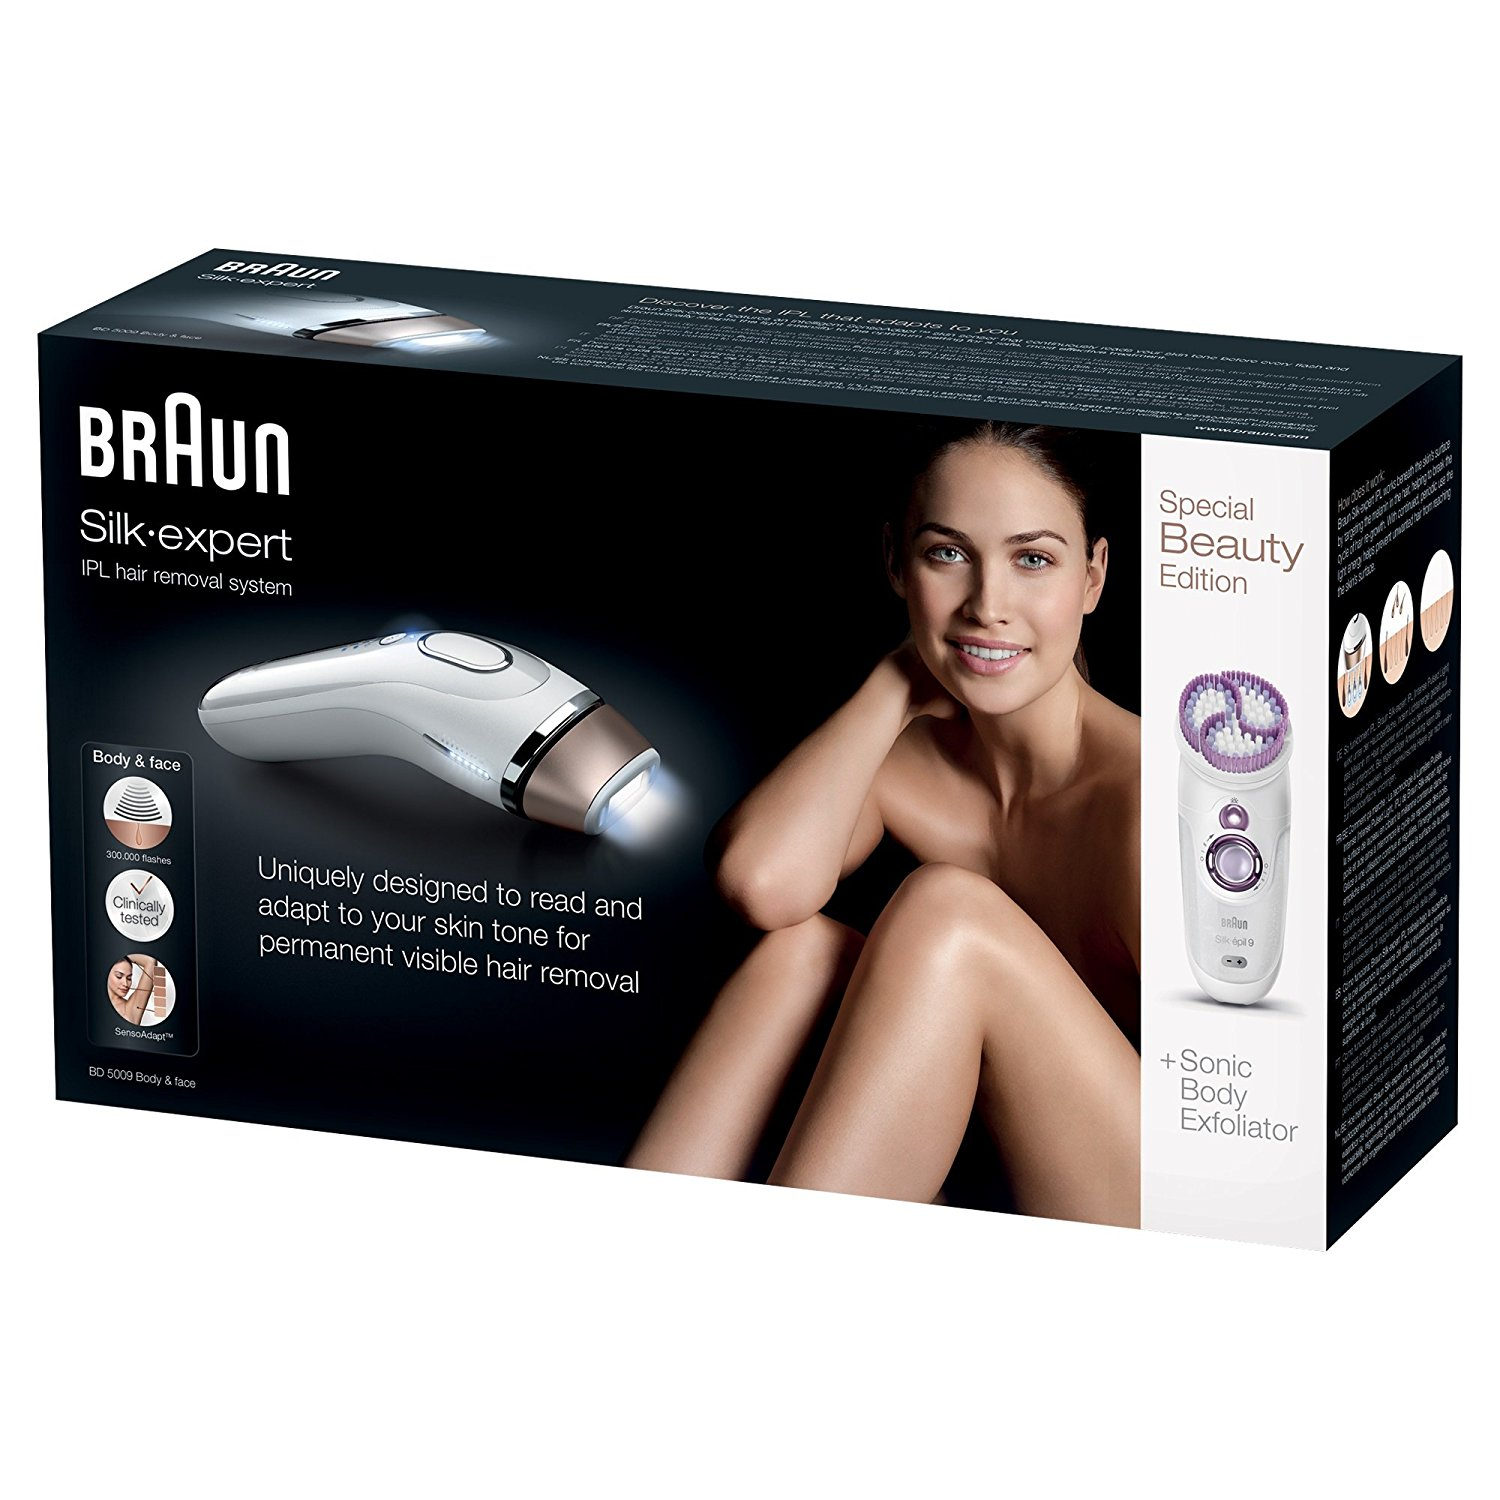 Hair-Wax-Braun-Silk-Expert2